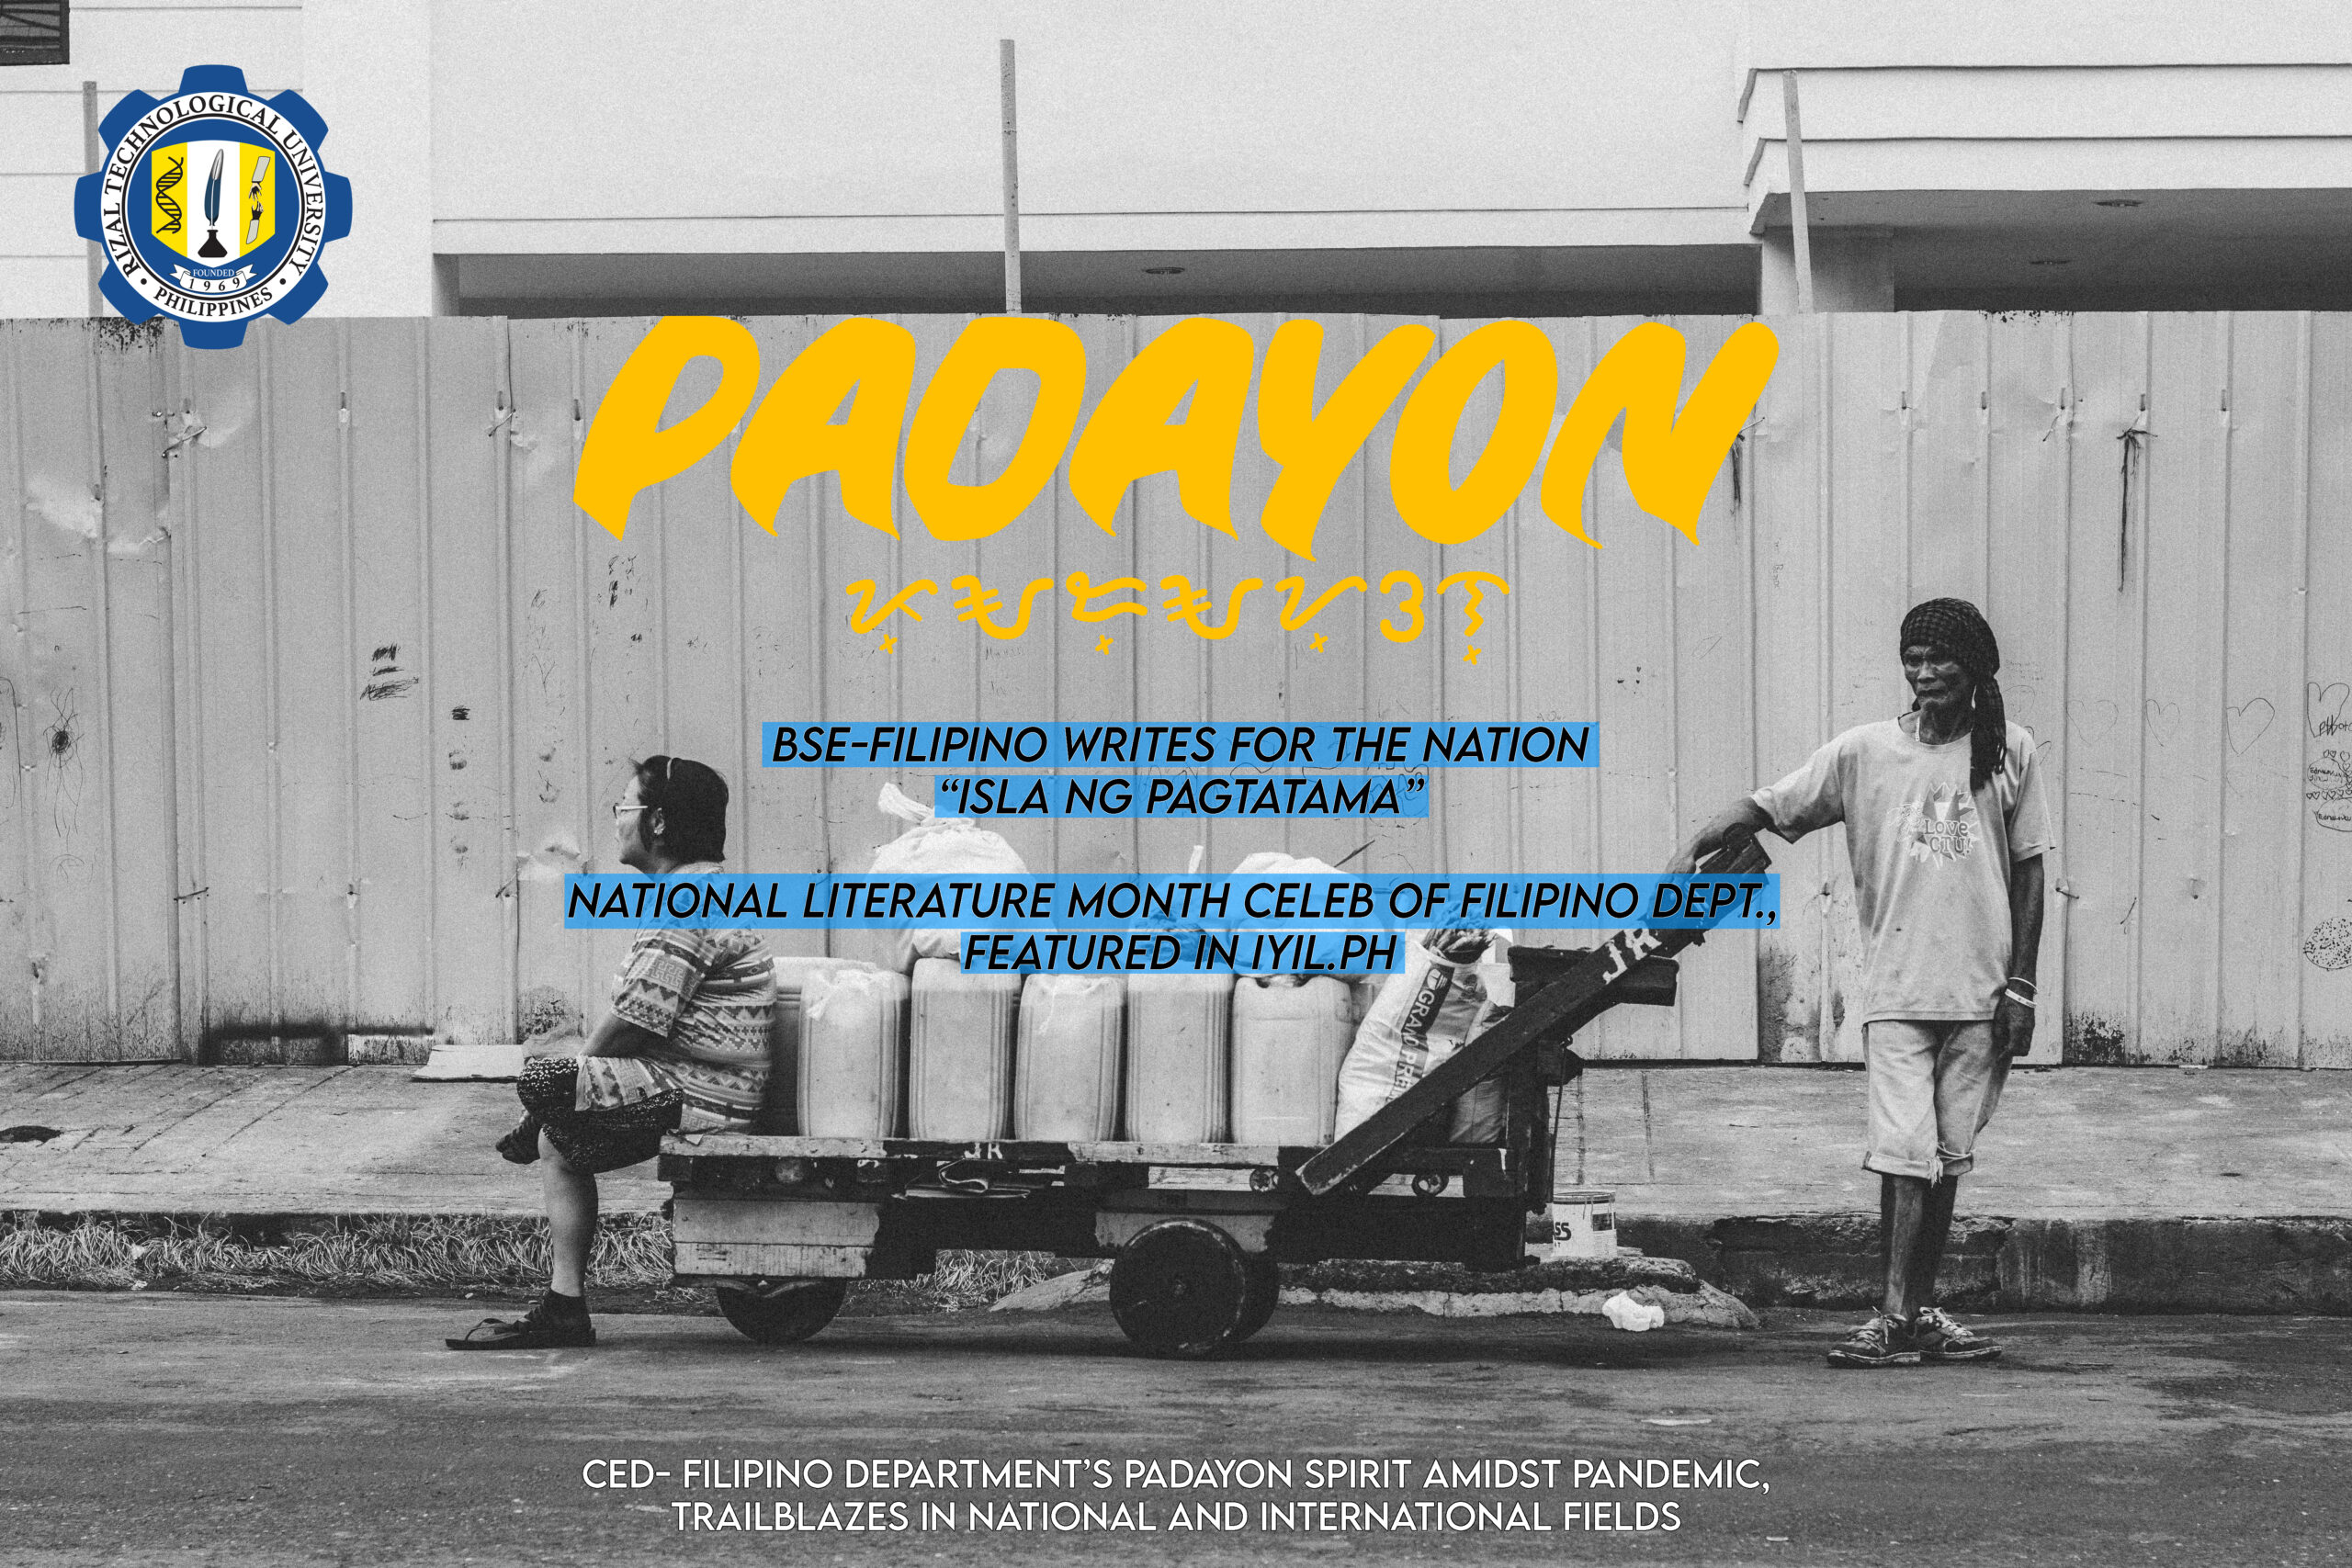 CED- Filipino Department's Padayon Spirit Amidst Pandemic, Trailblazers in National and International Fields